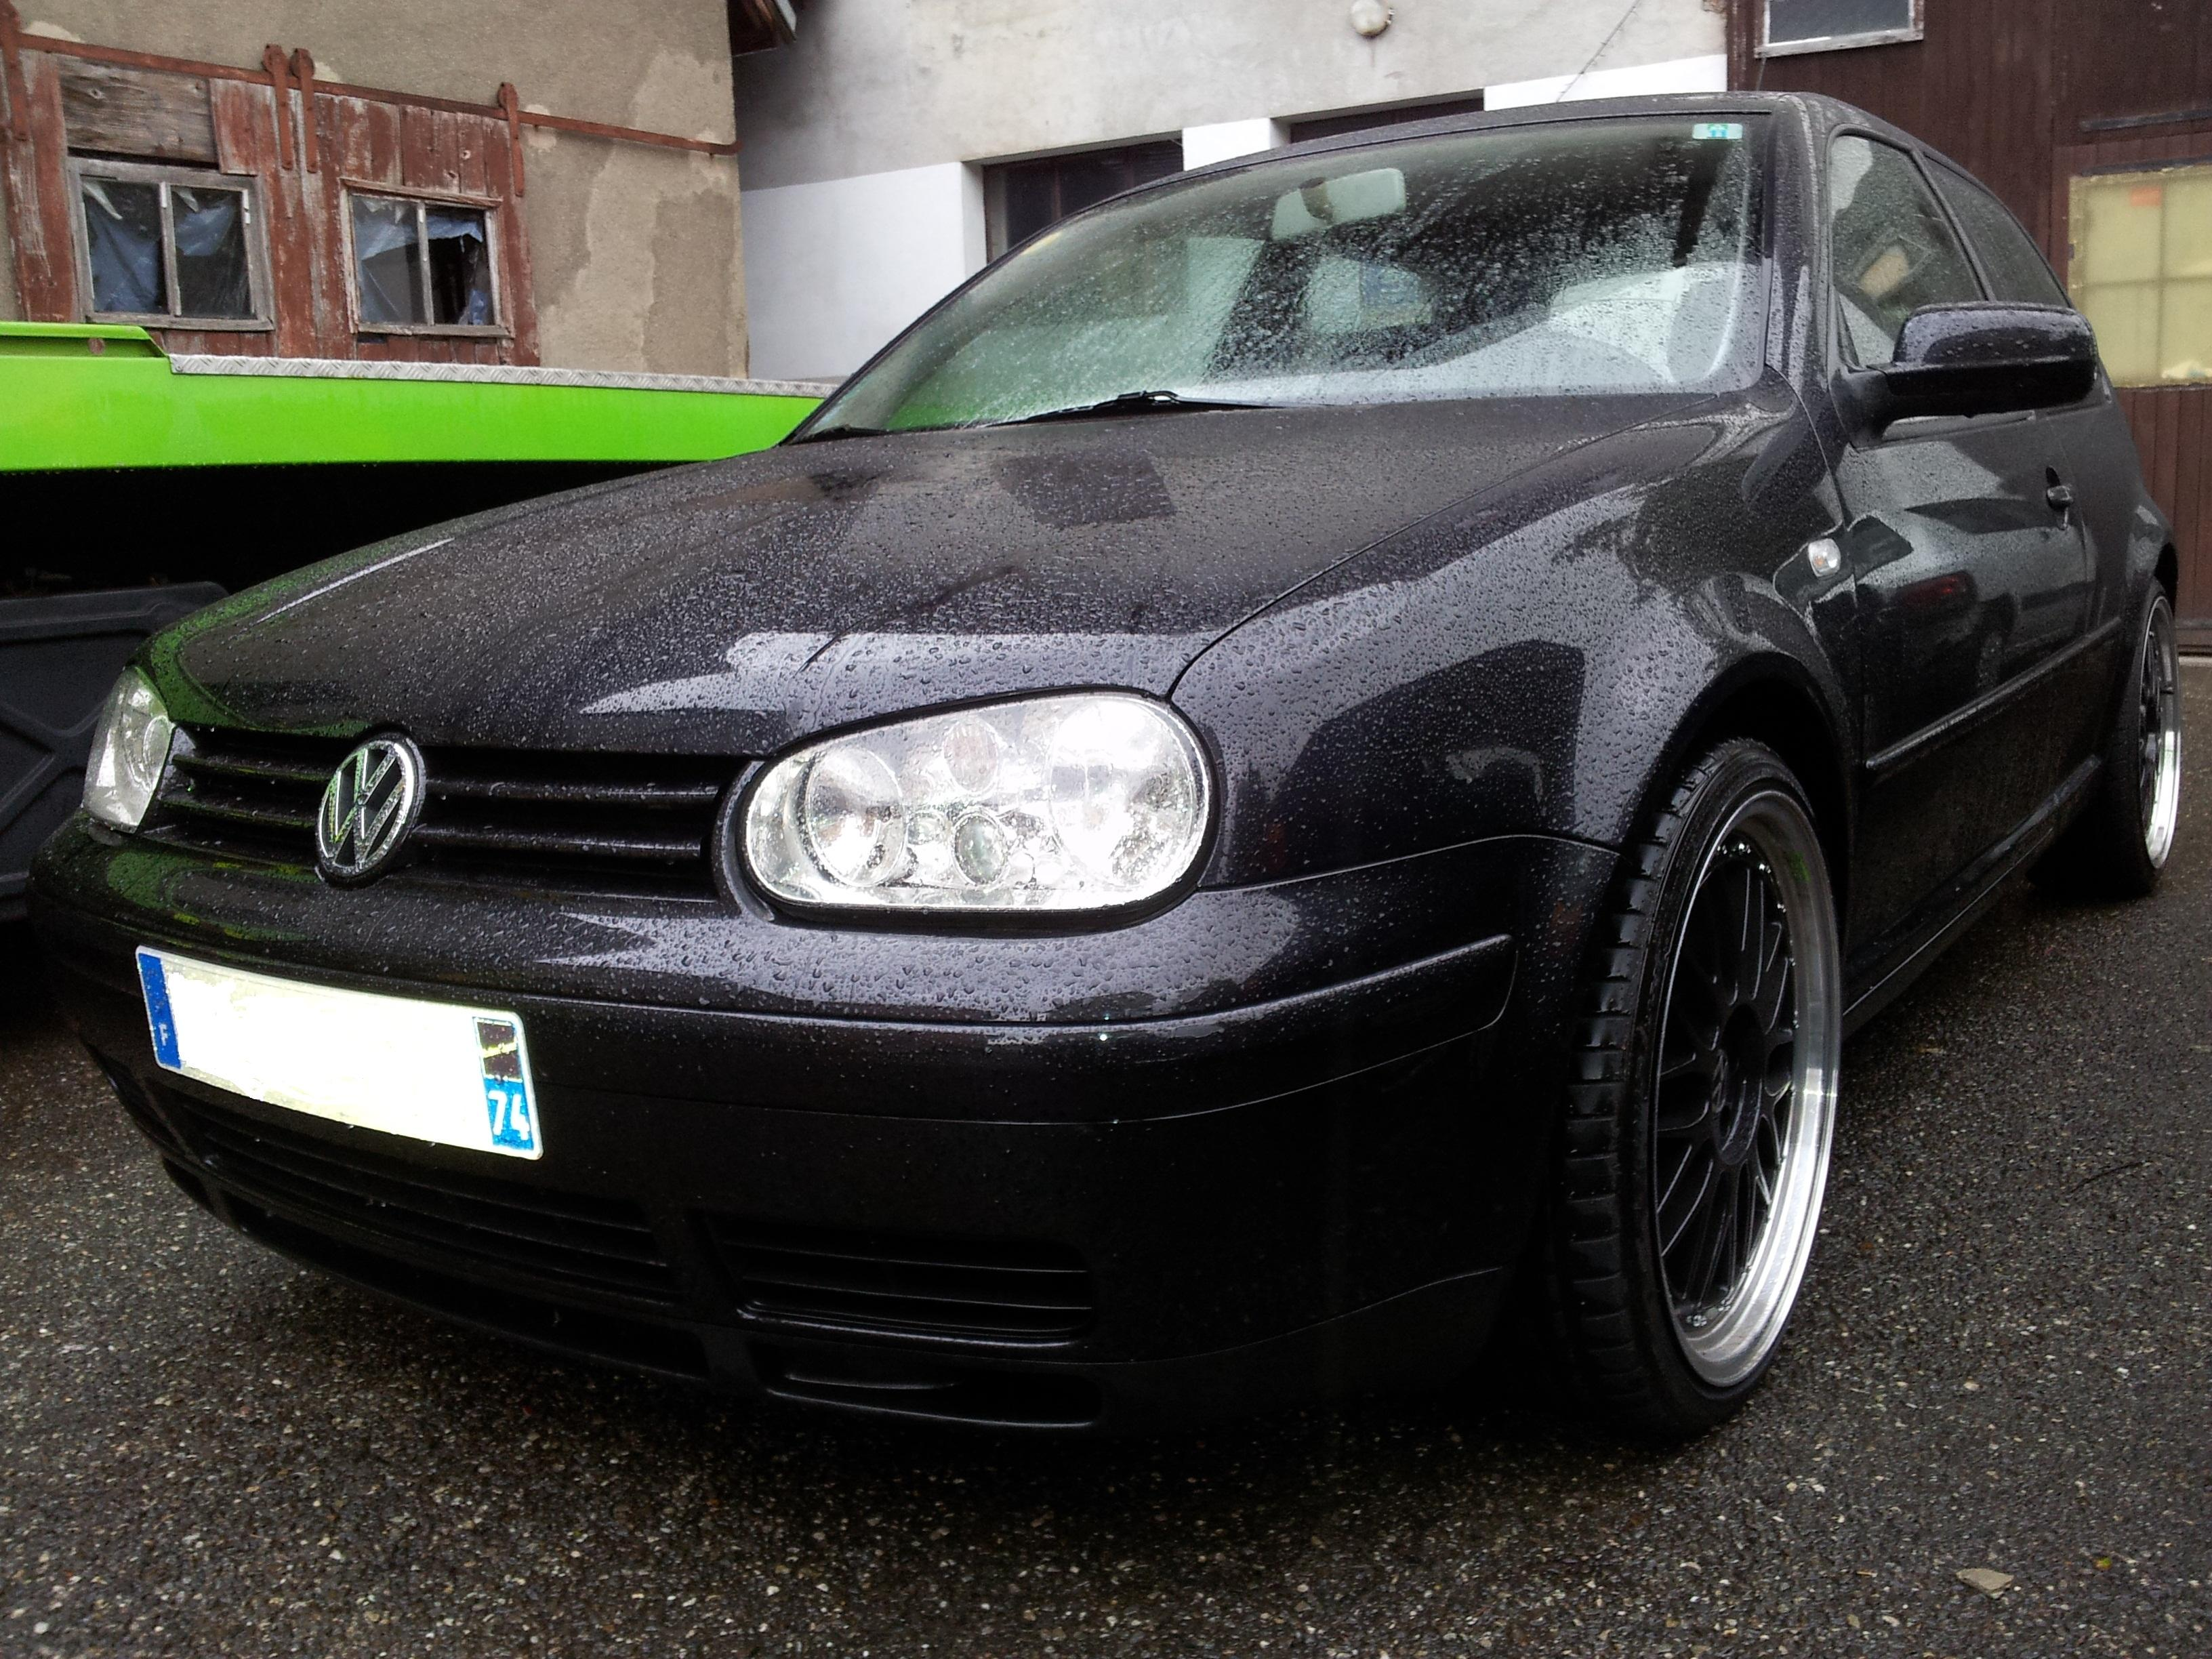 vw golf iv v6 4motions 2001 german look garage des. Black Bedroom Furniture Sets. Home Design Ideas